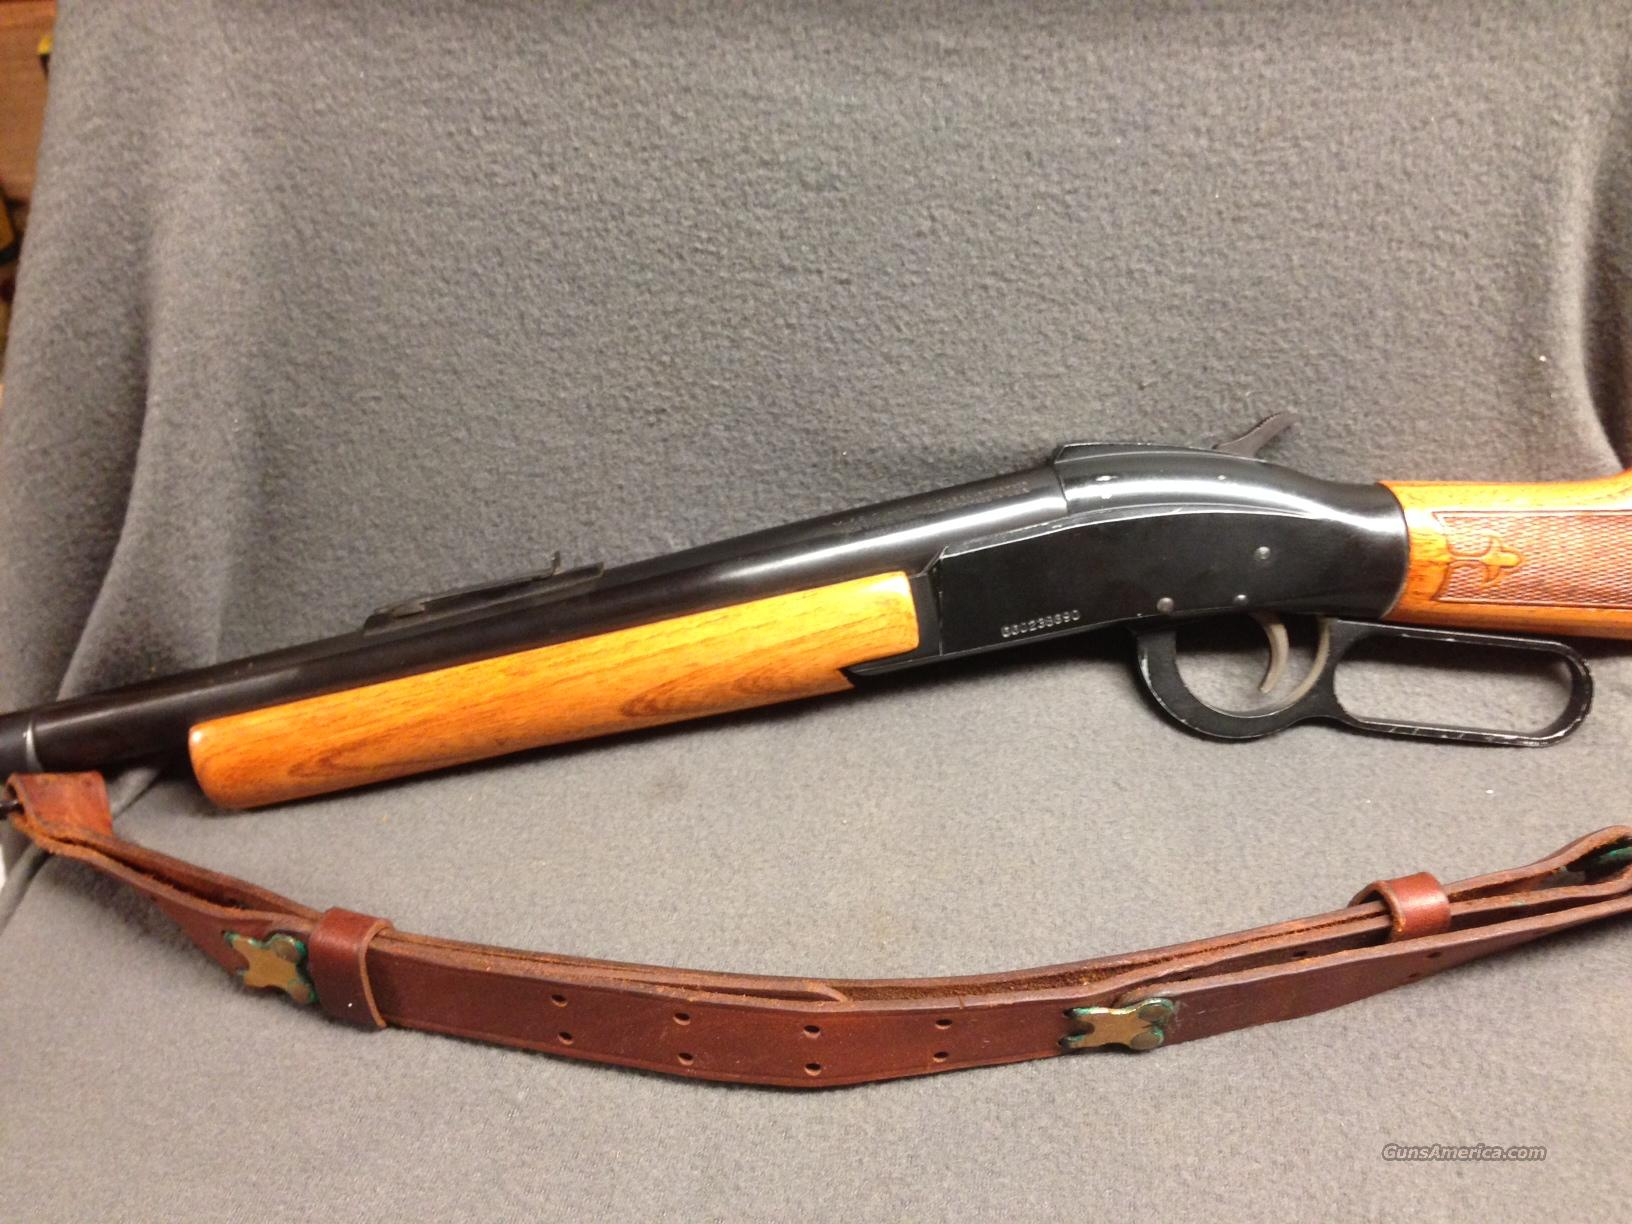 Ithaca  66   Super Single Smooth Bore Slug  Guns > Shotguns > Ithaca Shotguns > Single Bbl > Sporting/Hunting